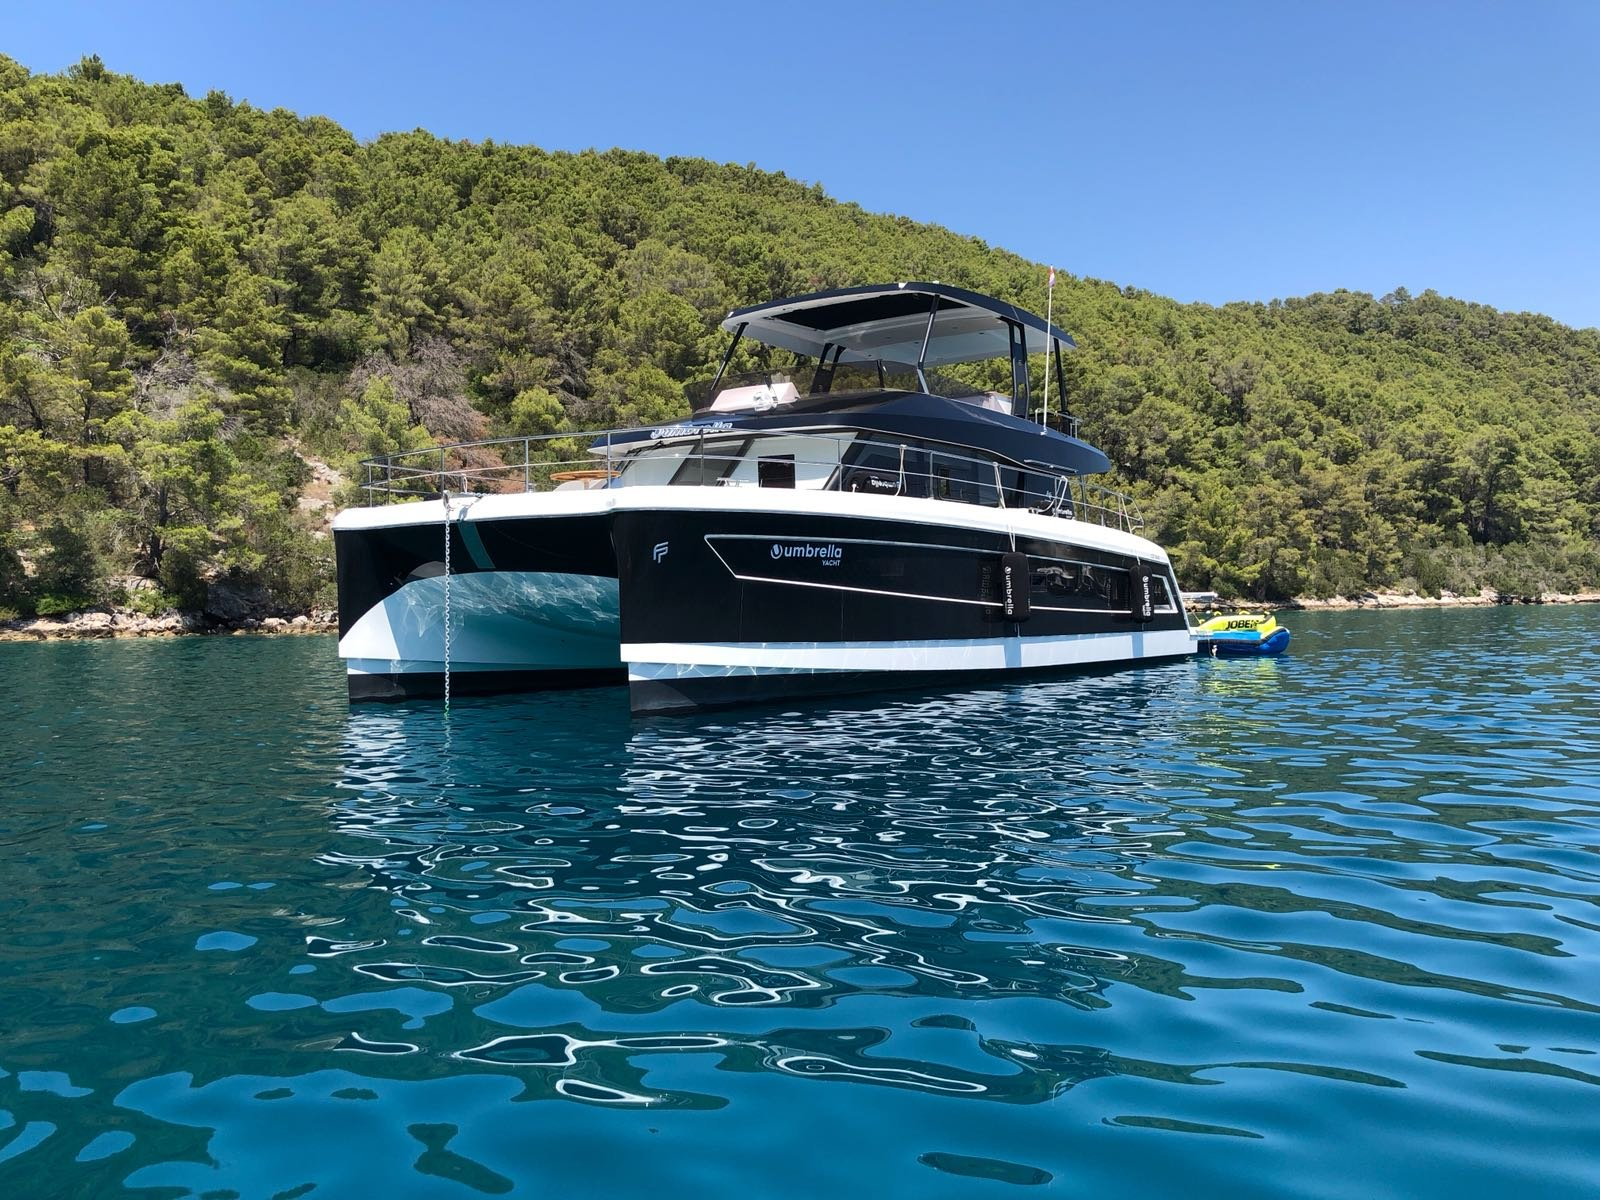 Fountaine Pajot 44 (Umbrella Victoria - incl. Williams 325 (100 PS) 2 SUP, Wakeboard ) Main image - 0